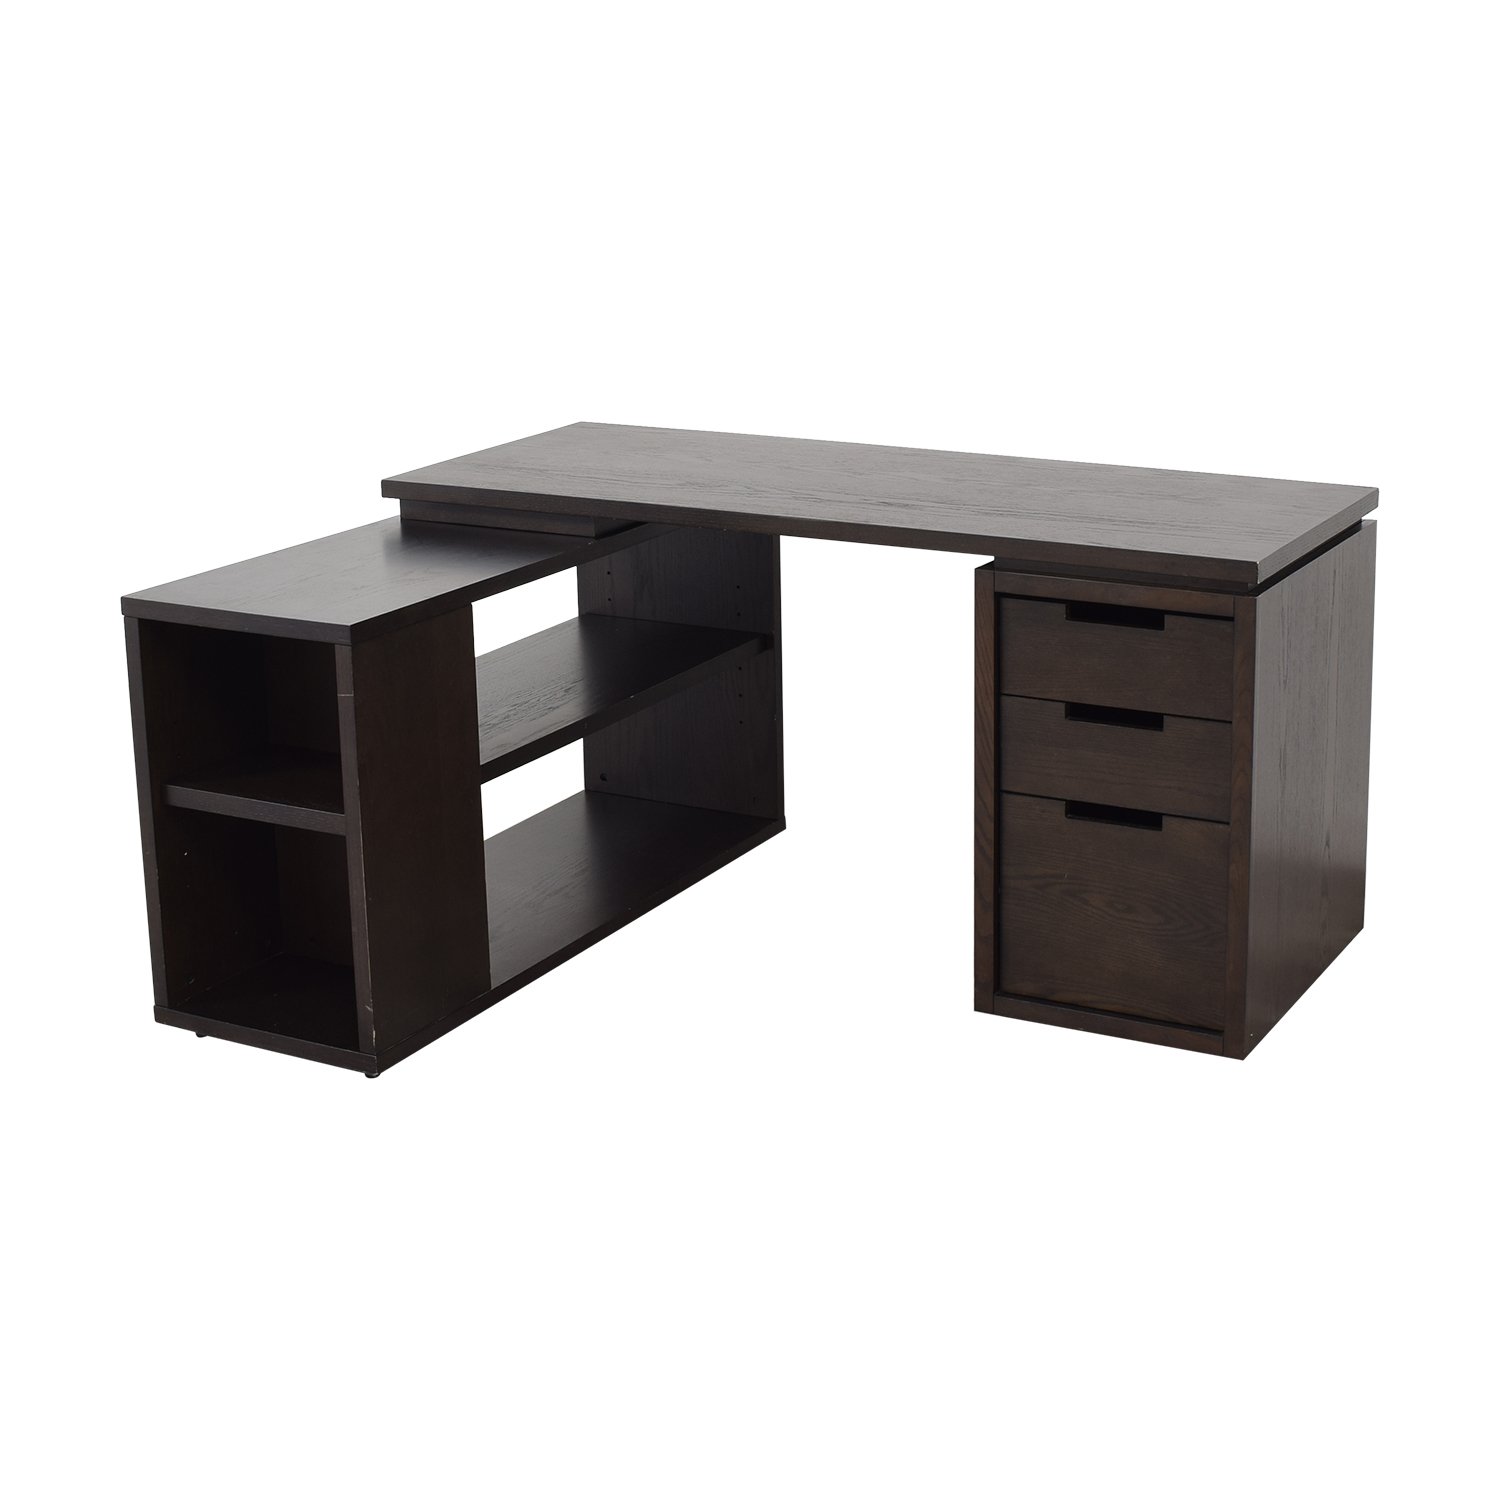 West Elm West Elm Modular Office L-shaped Desk and Bookcase on sale